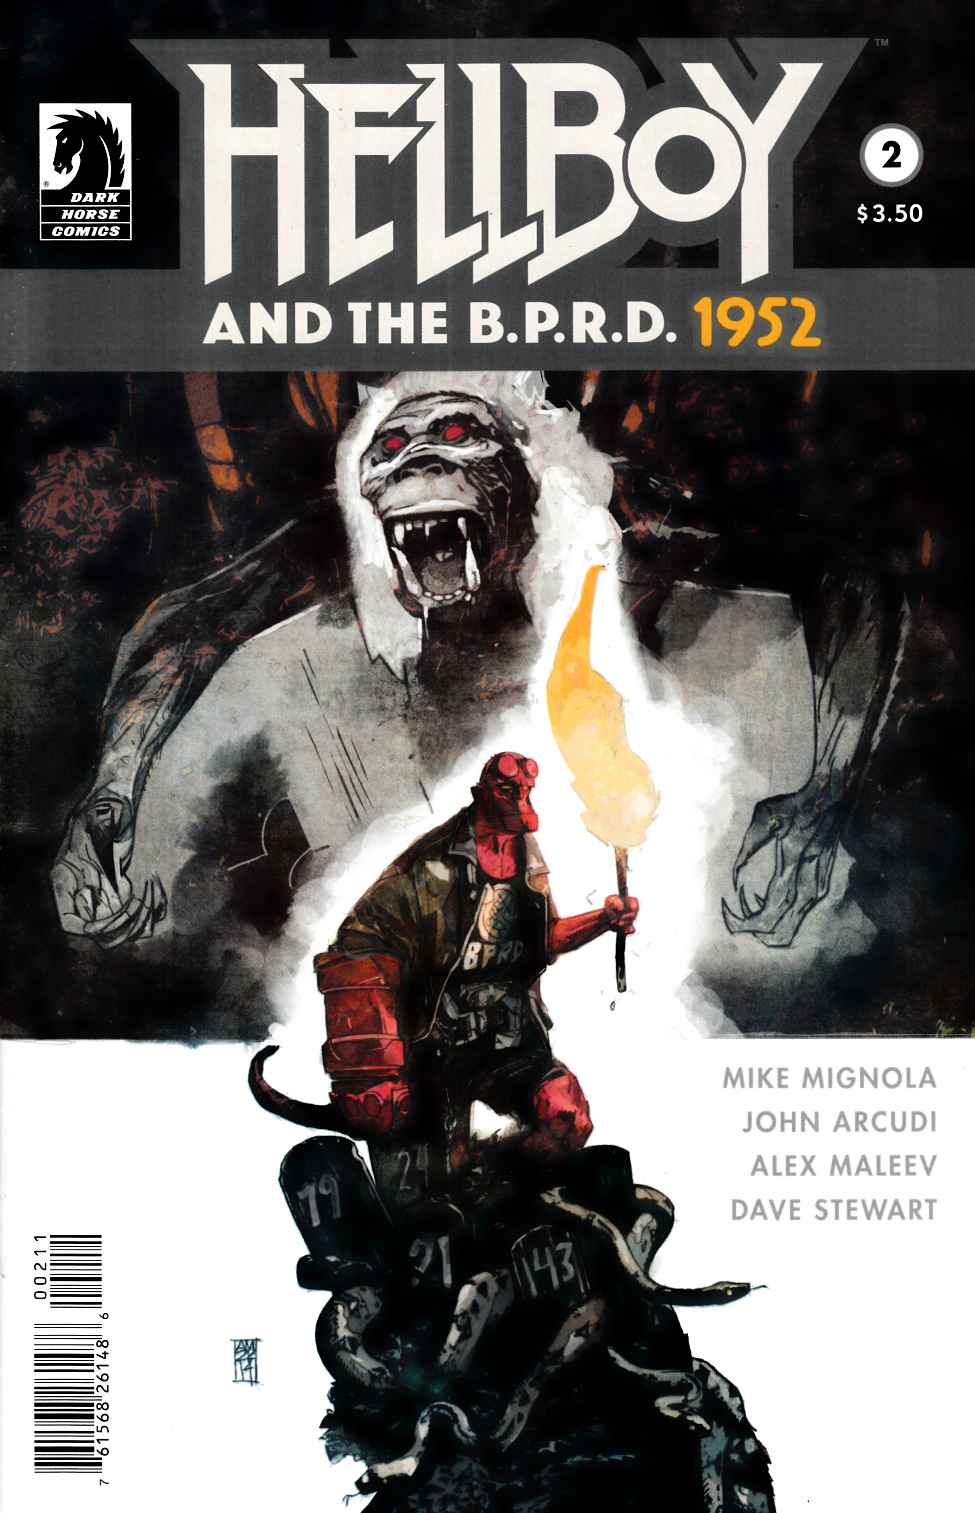 Hellboy and the BPRD #2 1952 [Dark Horse Comic] THUMBNAIL